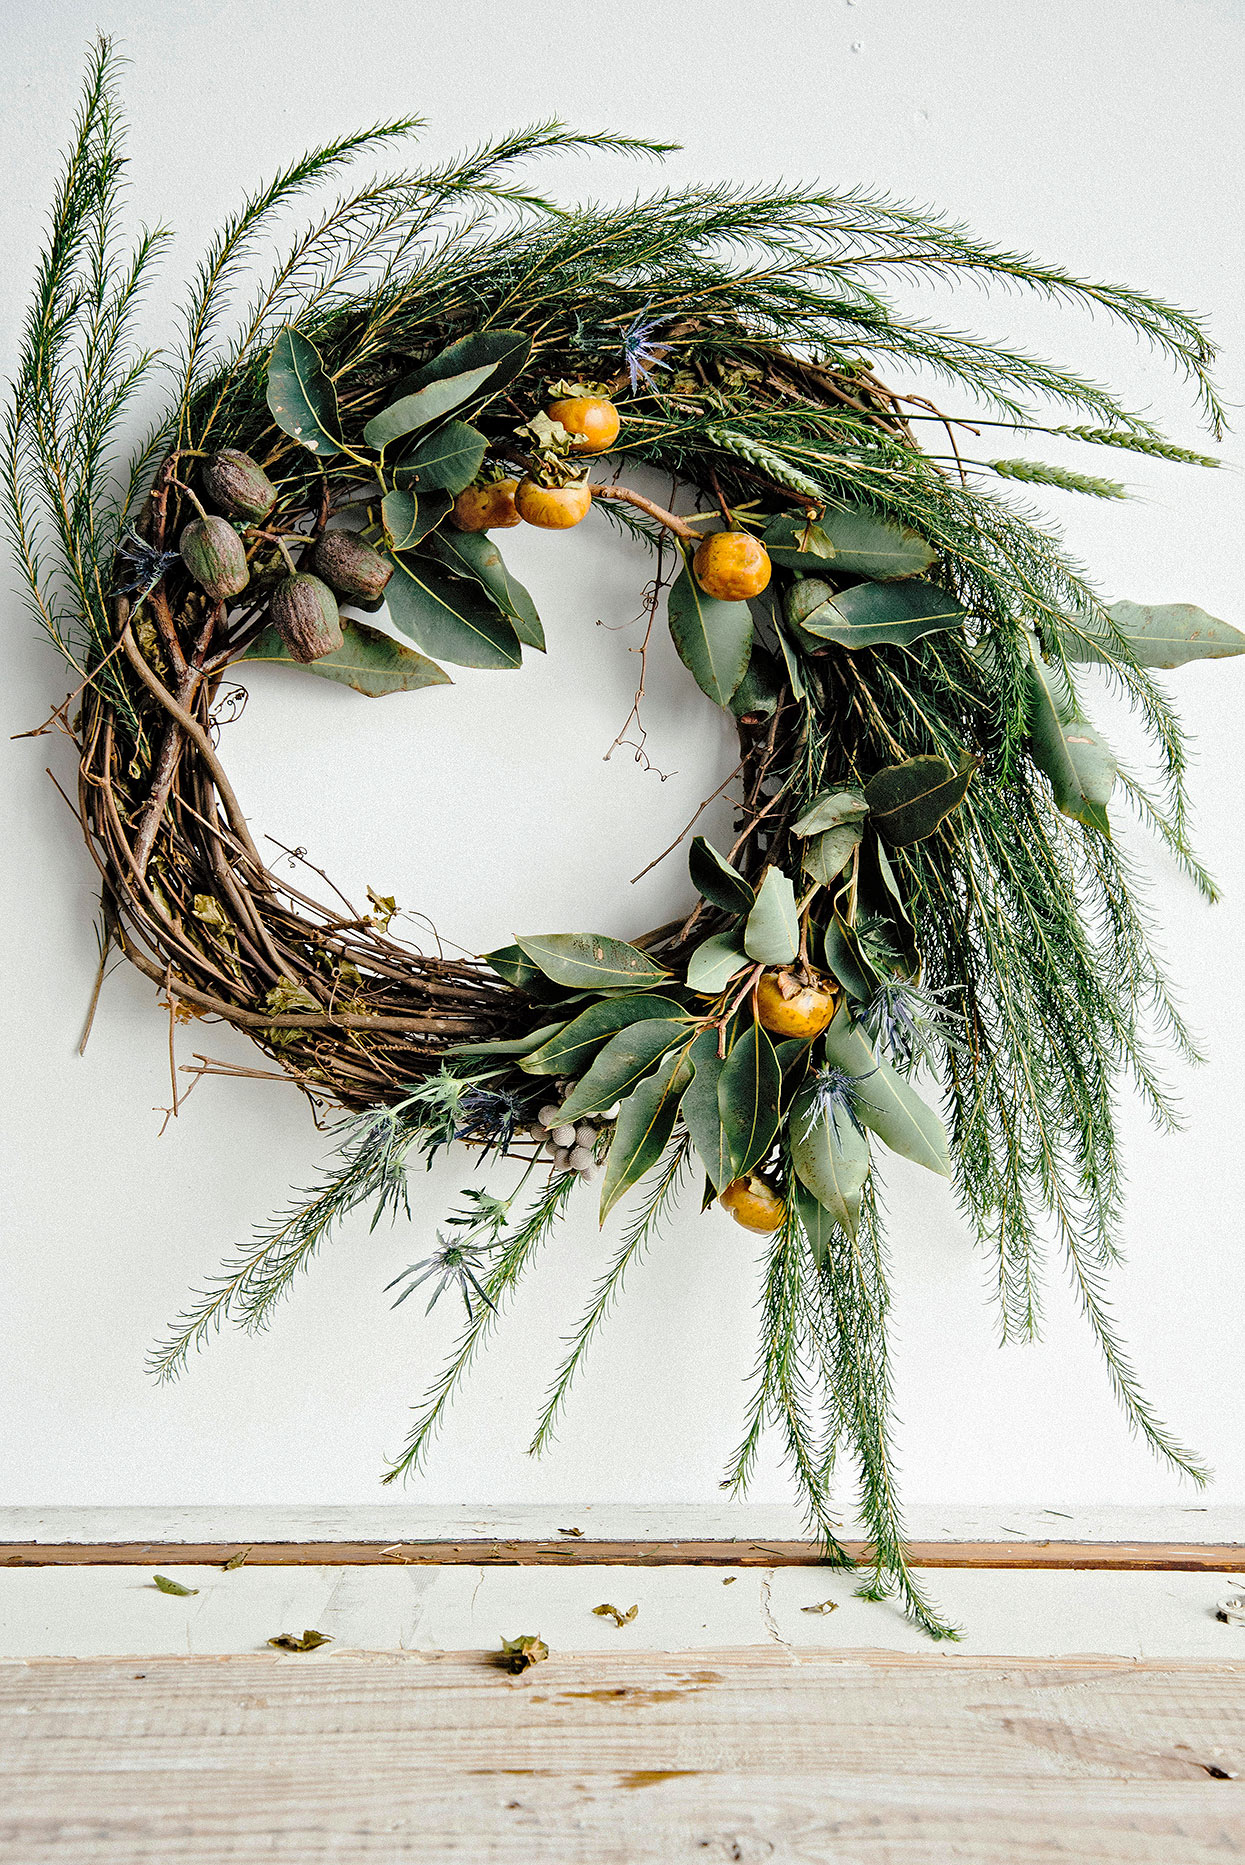 grapevine wreath base with persimmon, eucalyptus nuts and thistle